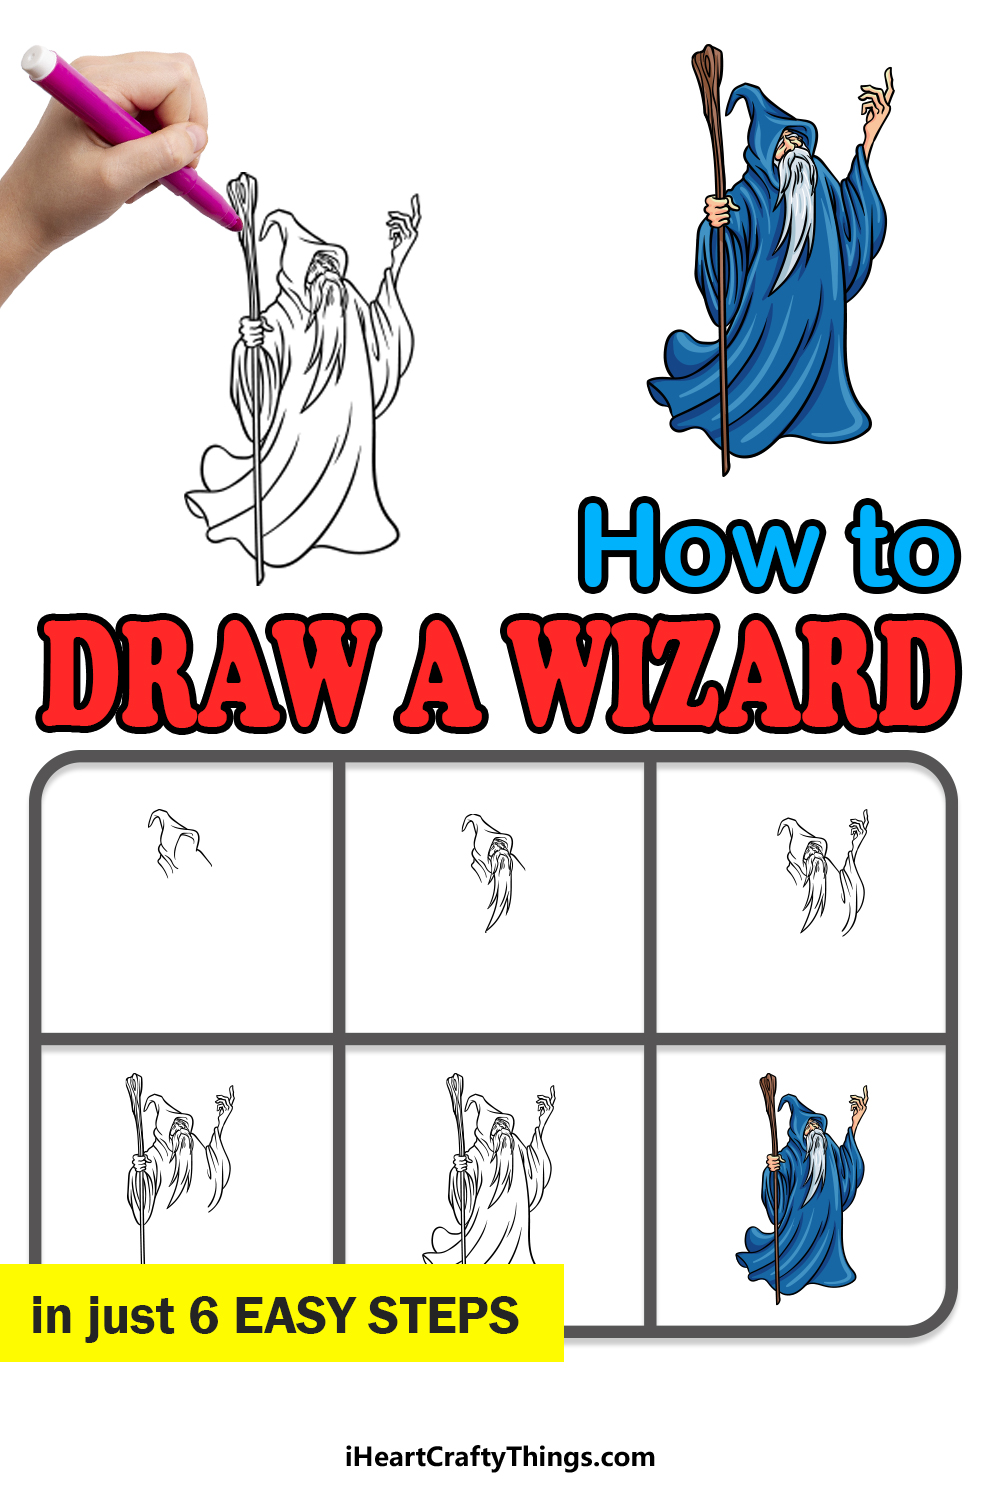 how to draw a wizard in 6 easy steps